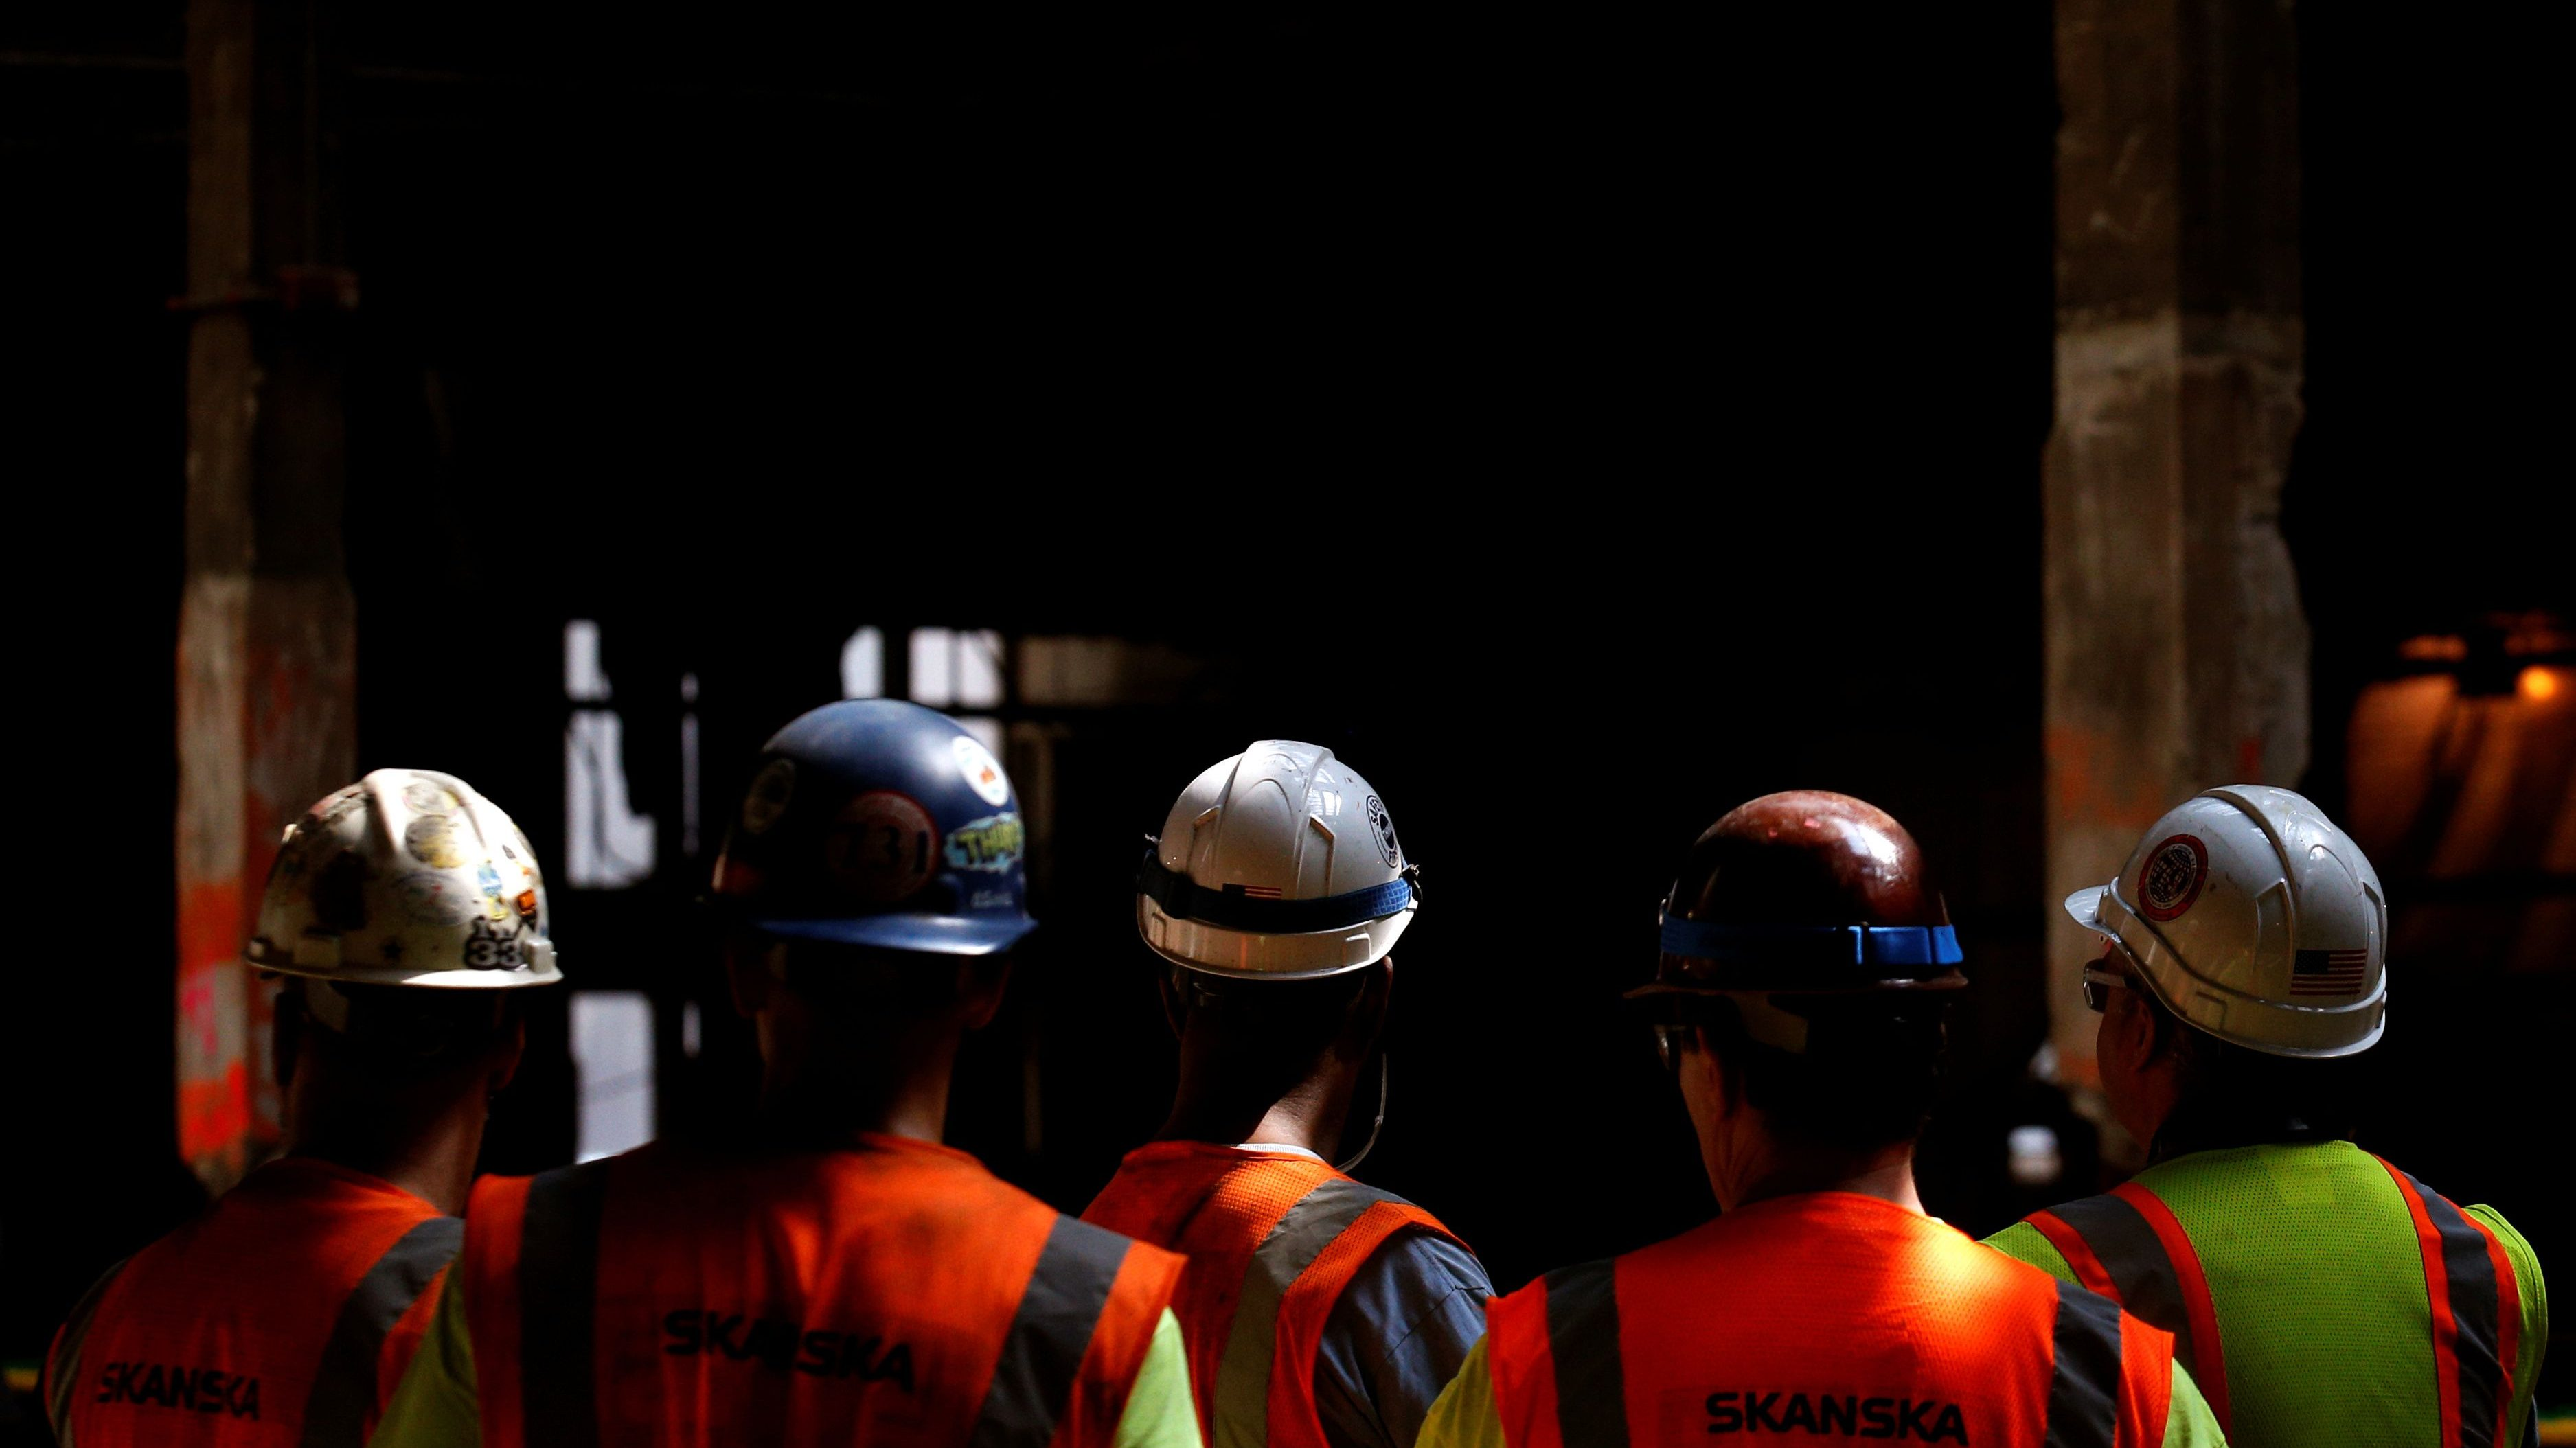 Workers in hard hats at a building site